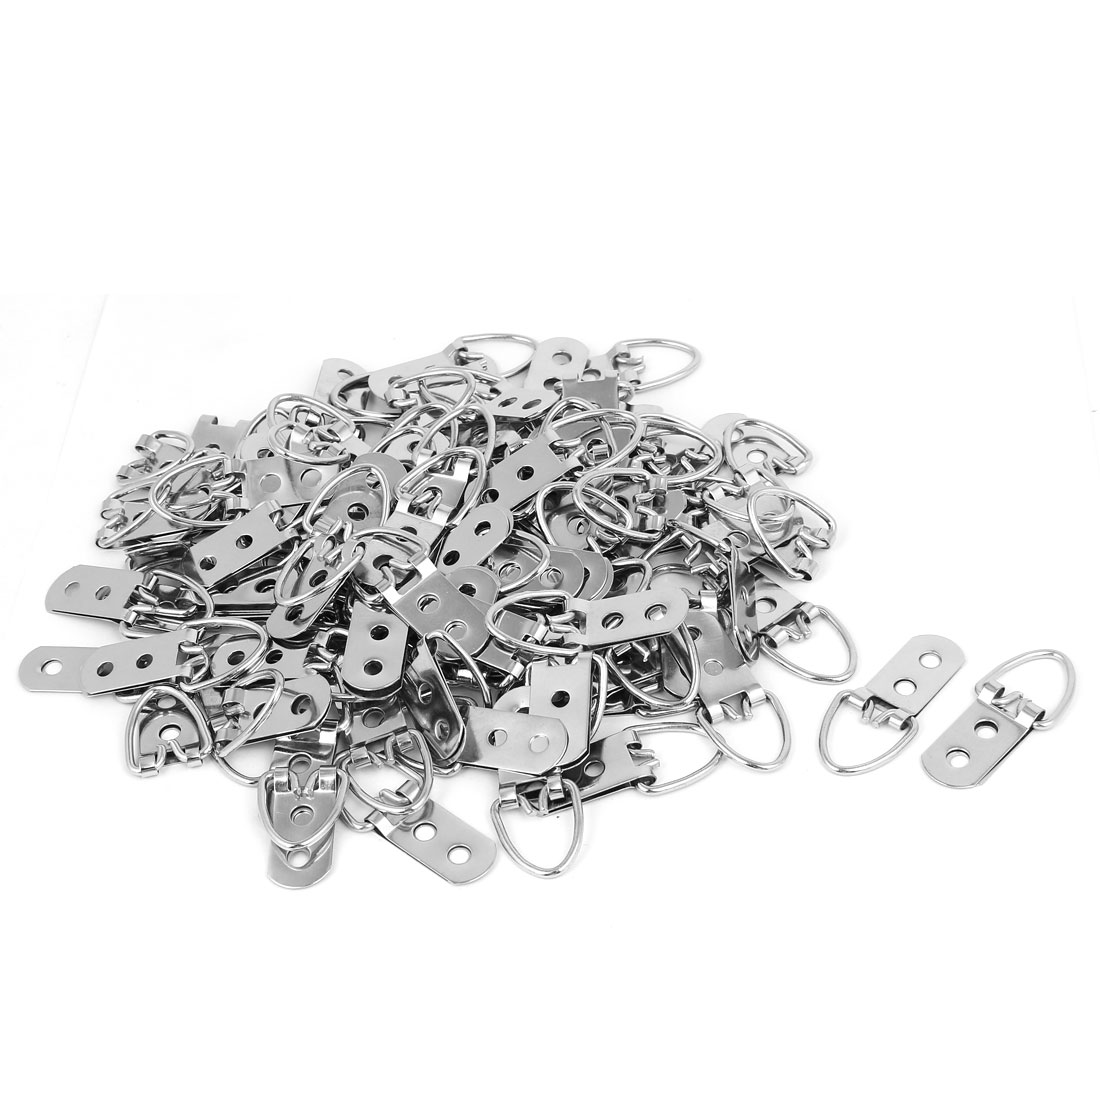 Double Hole D-Ring Picture Frame Hanging Metal Strap Hanger Silver Tone 100PCS